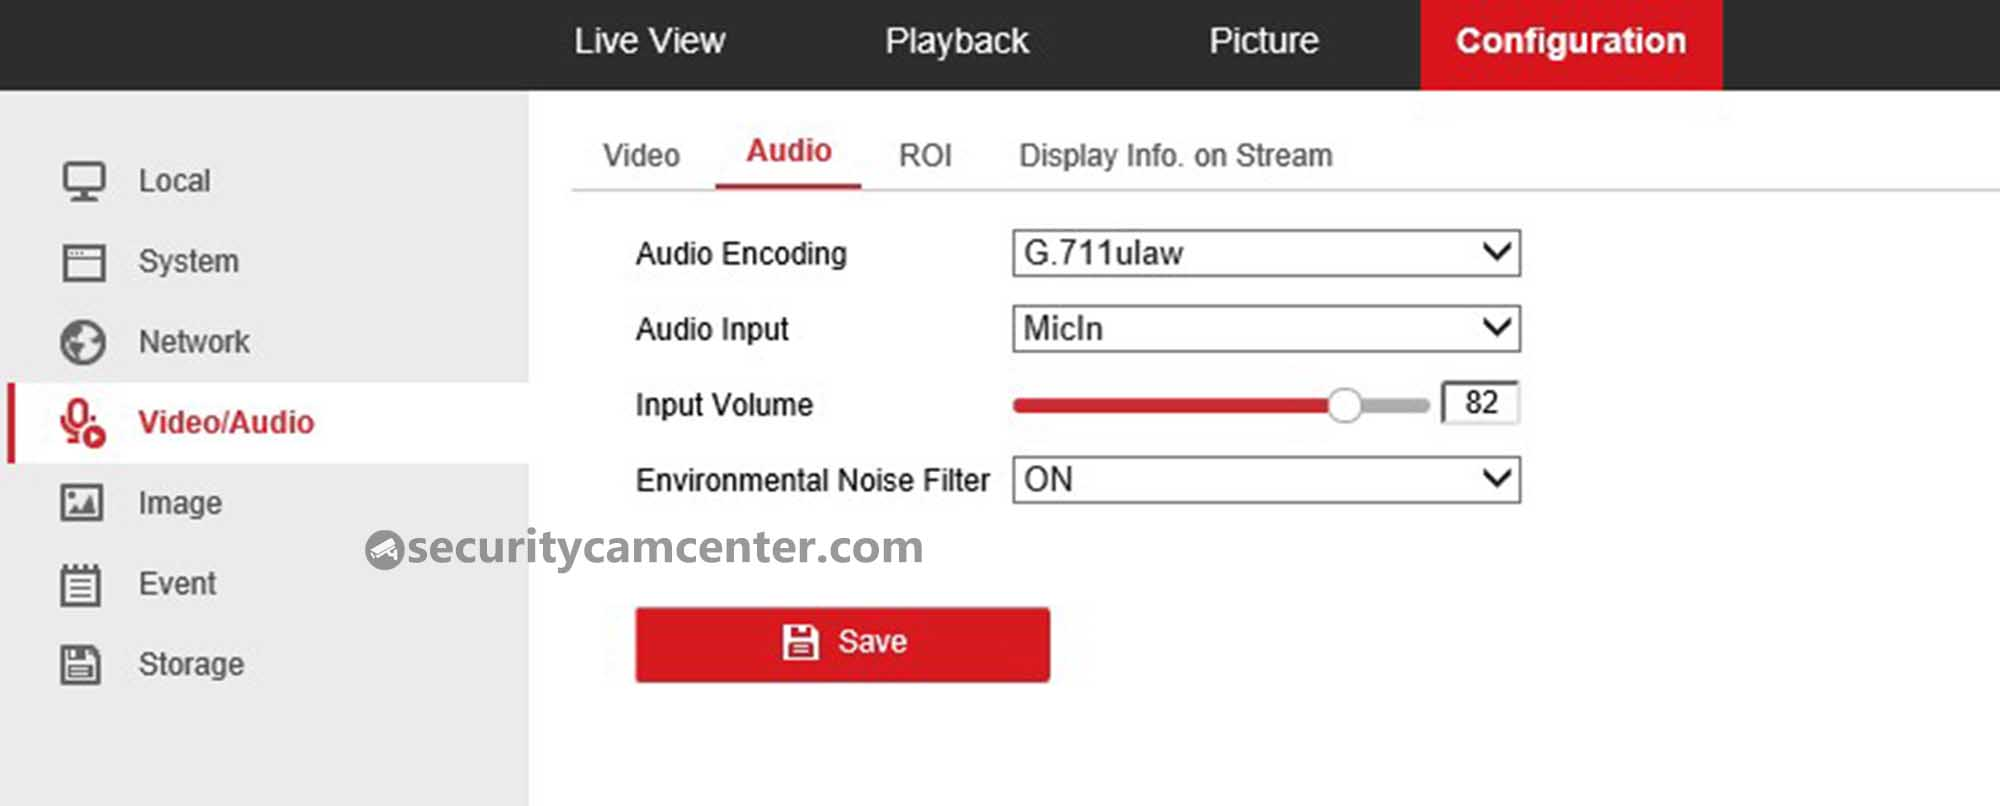 Here you can tweak the audio settings of the camera. Increase the input volume for a better performance.